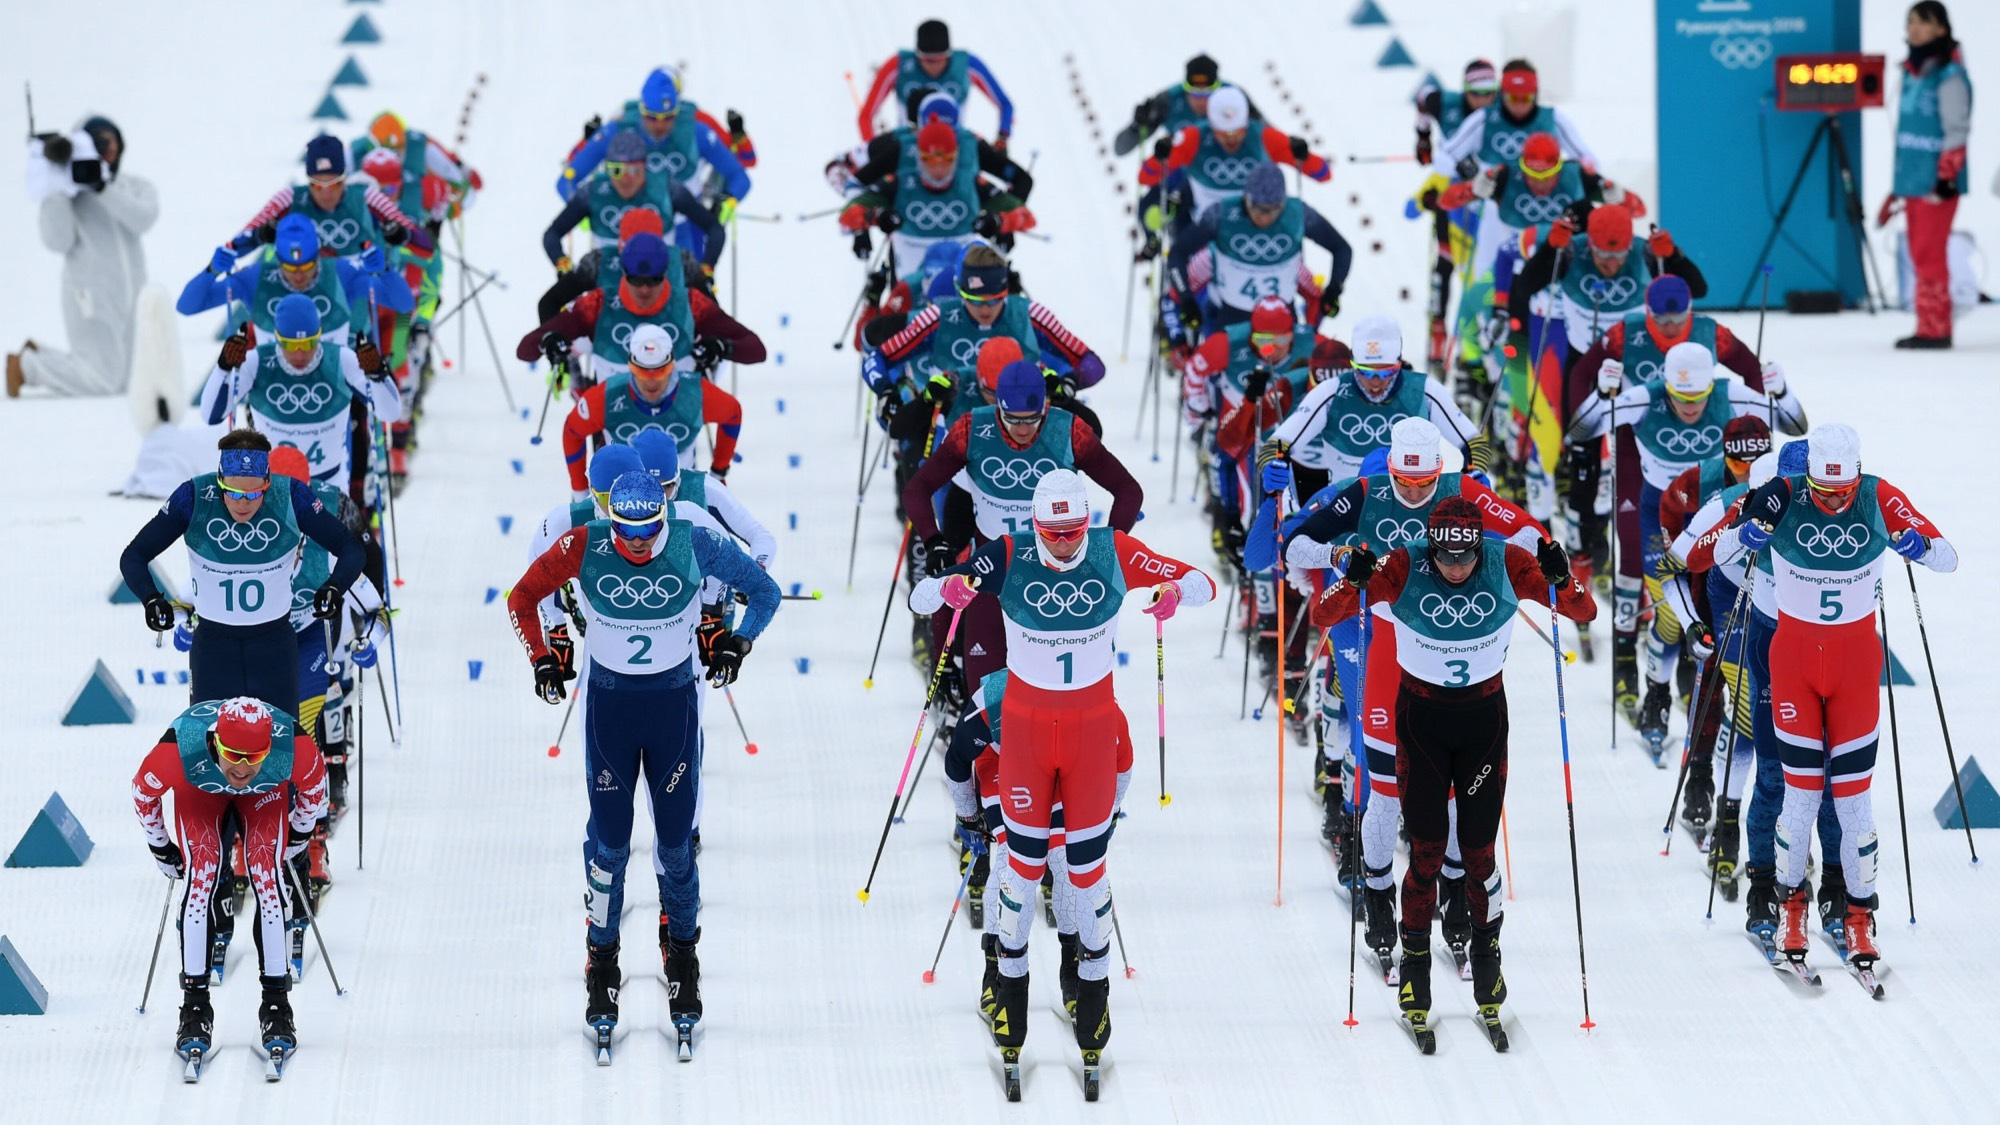 Olympic cross country skiers taking off